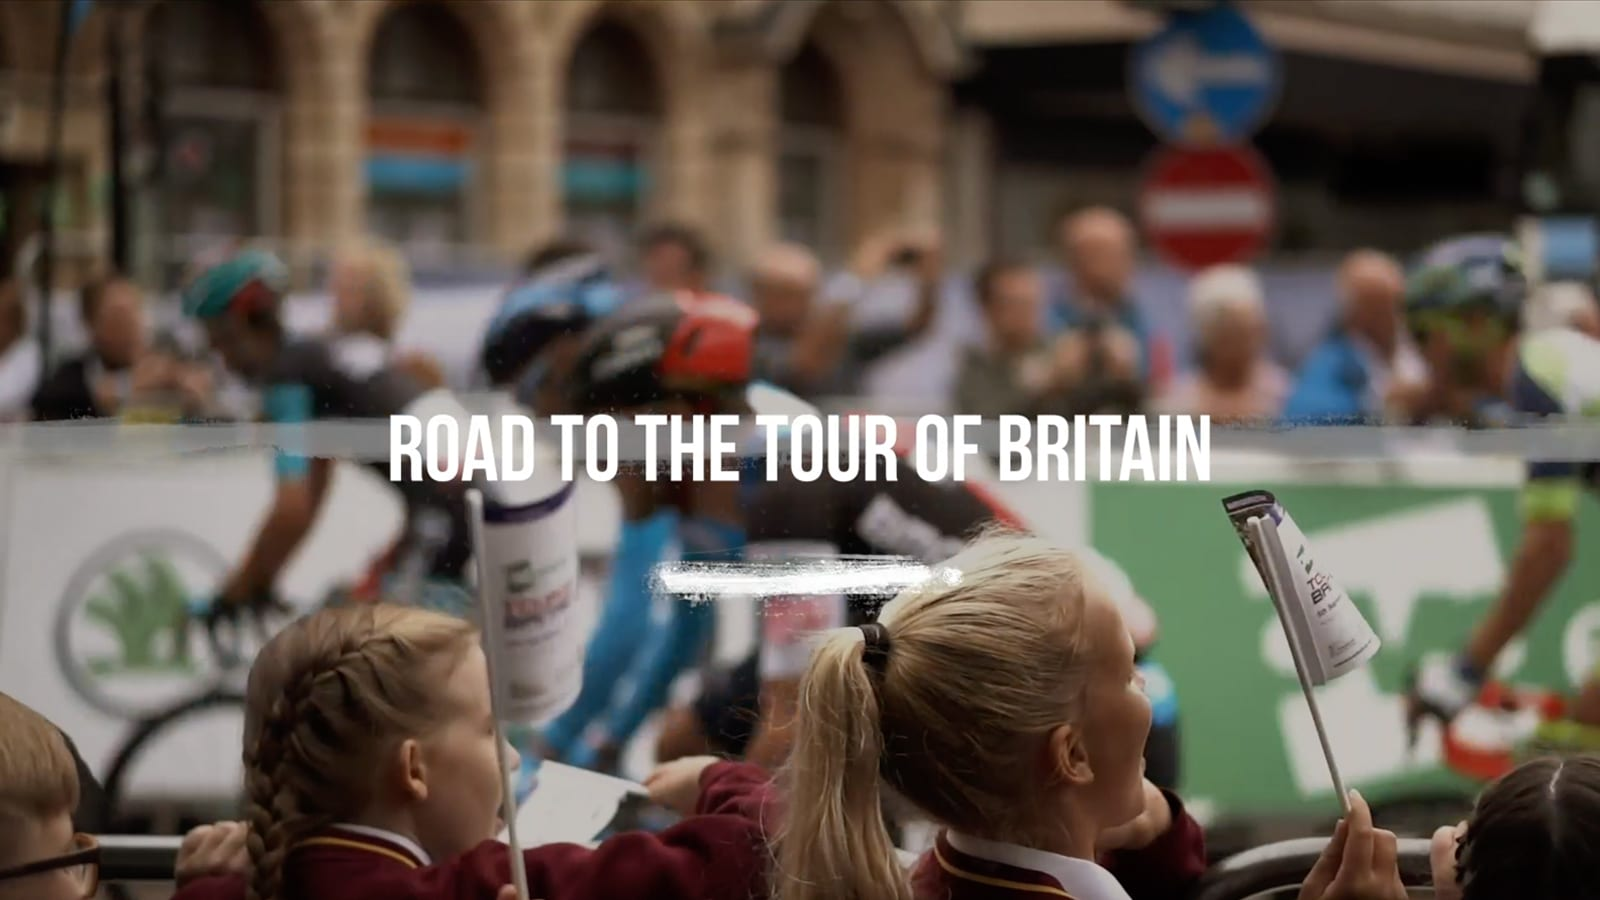 Road to the Tour of Britain